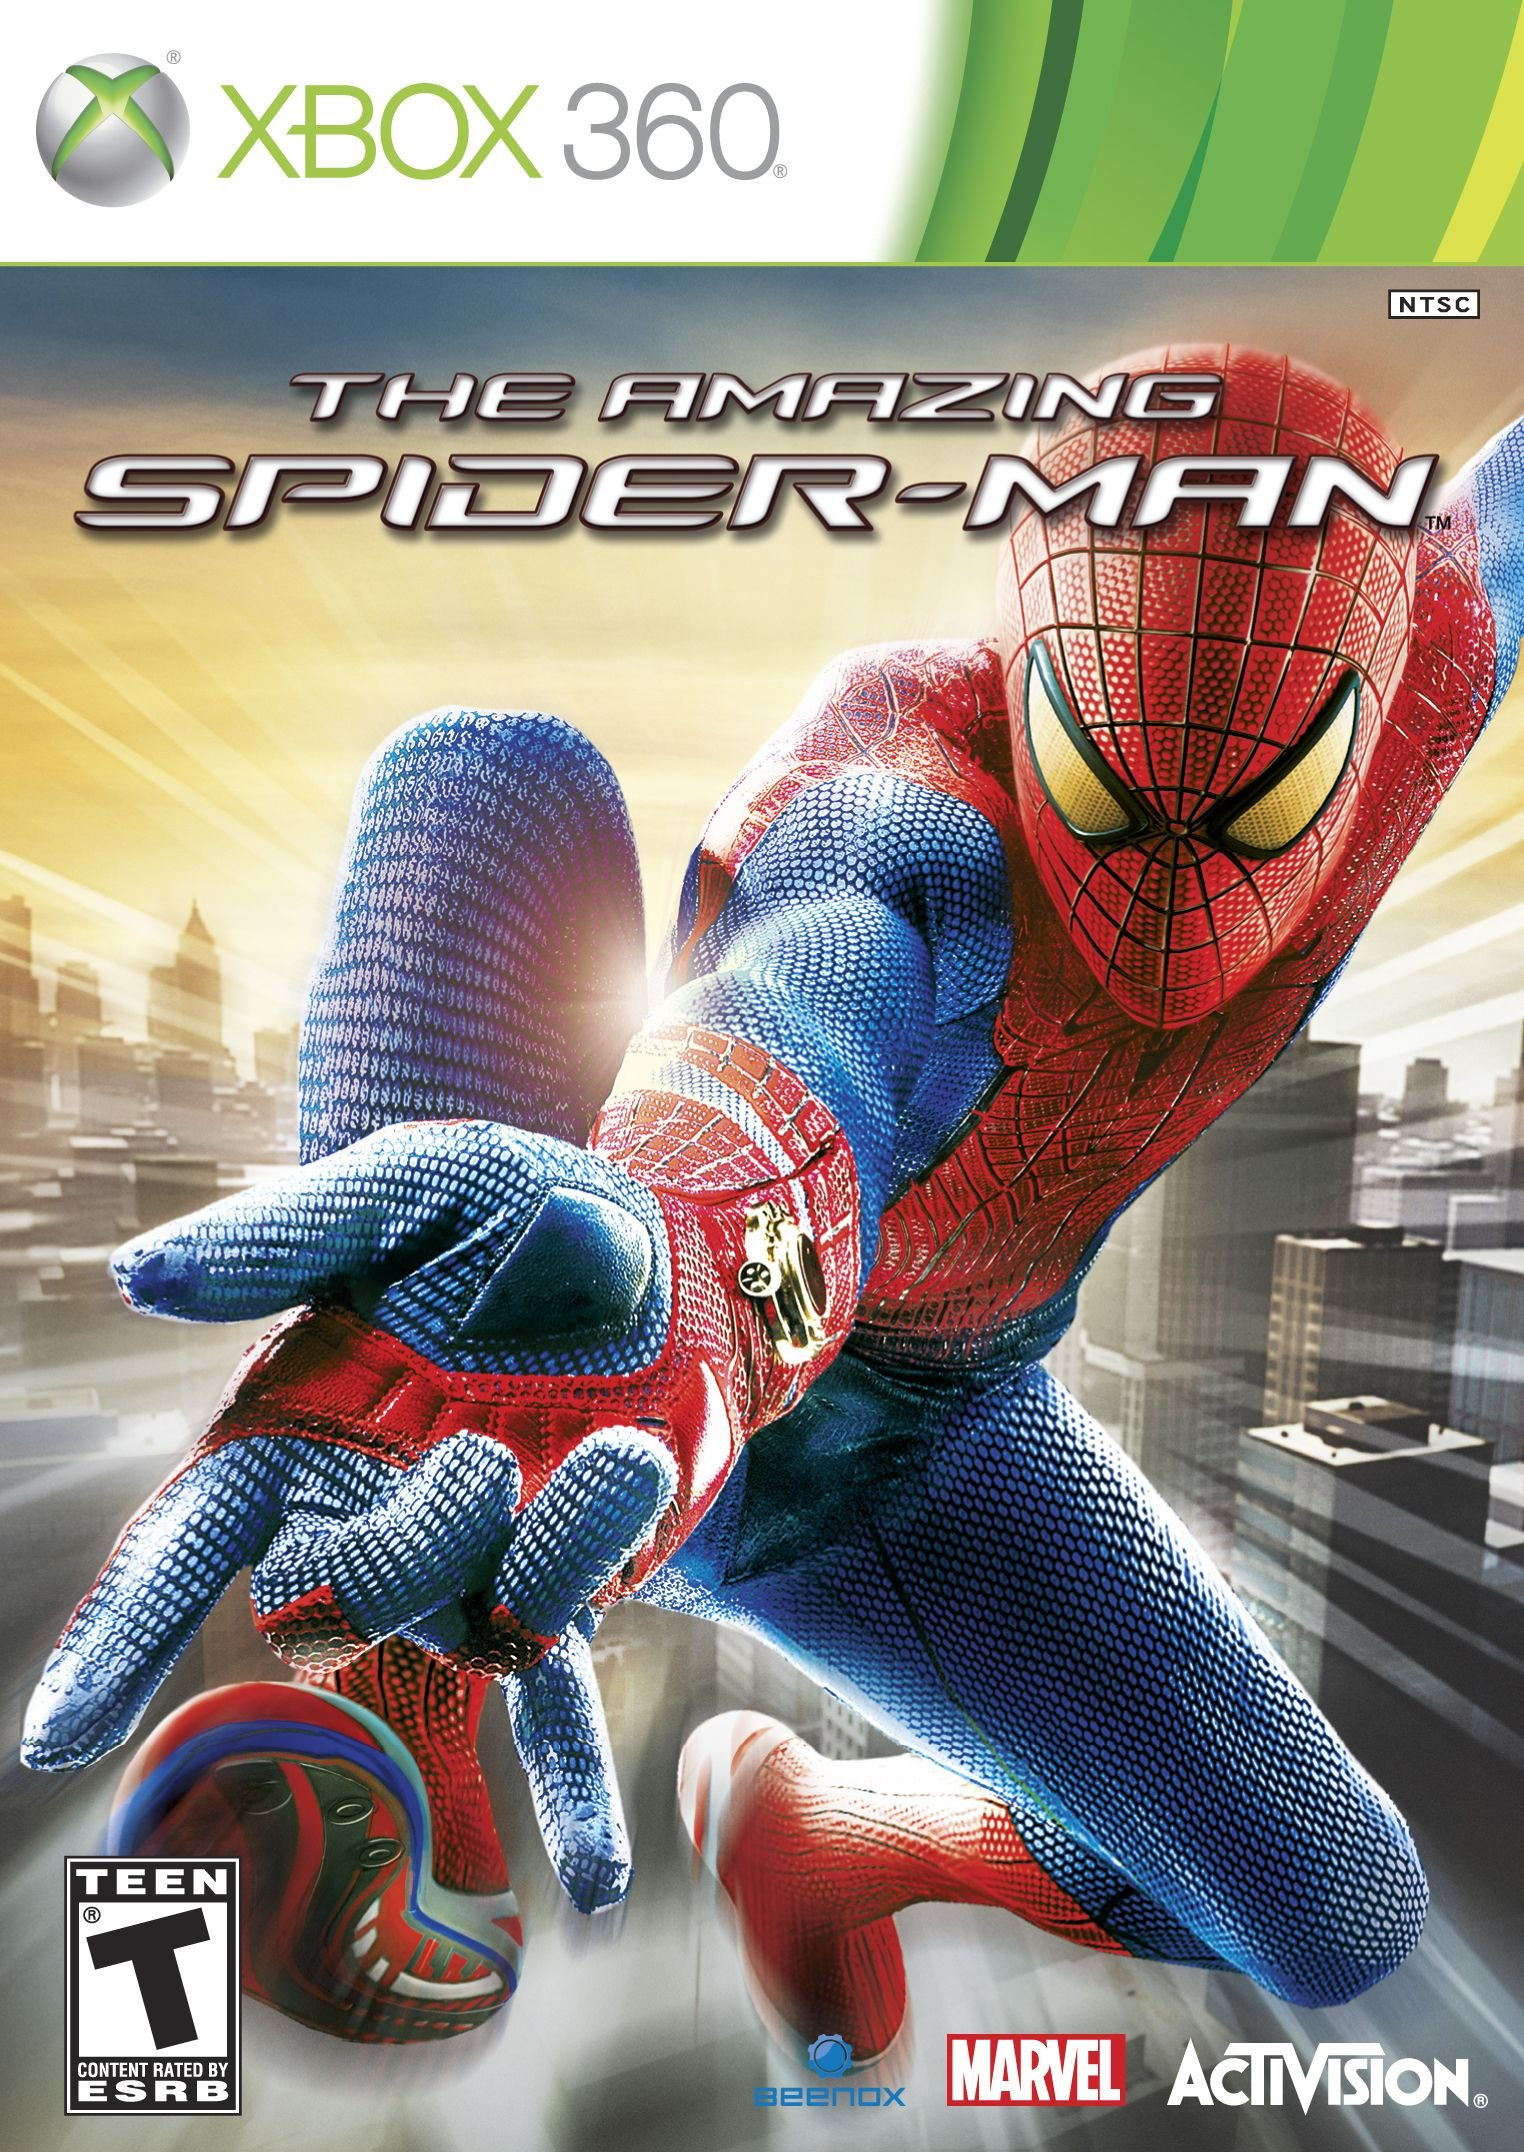 The Amazing Spider-Man (Xbox 360) Review 2